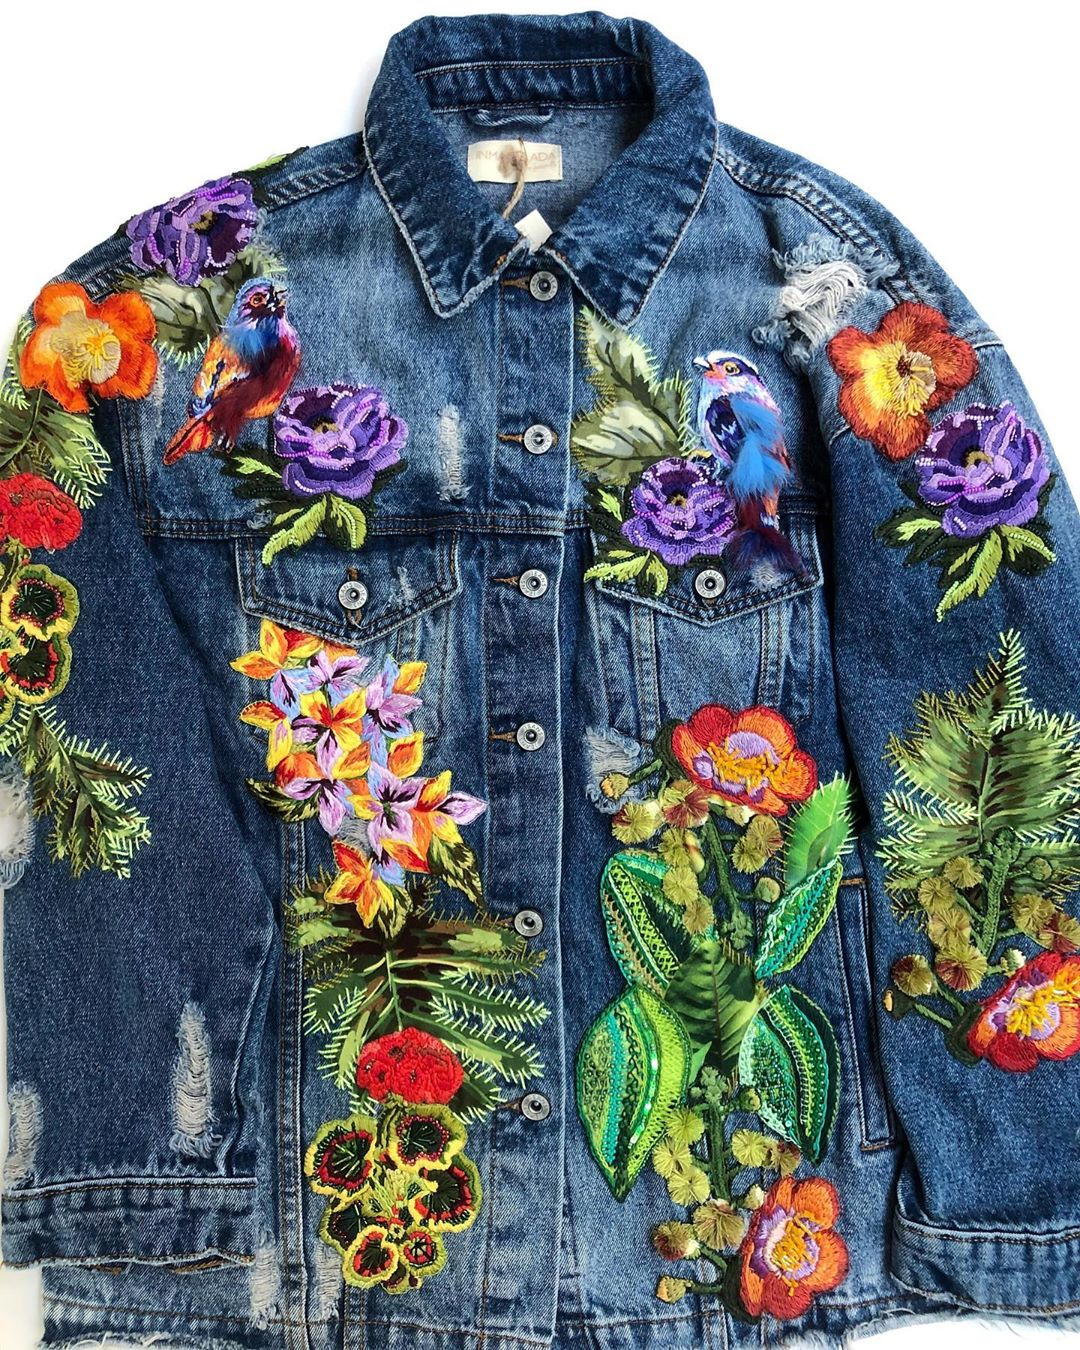 Colorful Embroideries Transforms Humble Denim Jackets into Wearable Works of Art